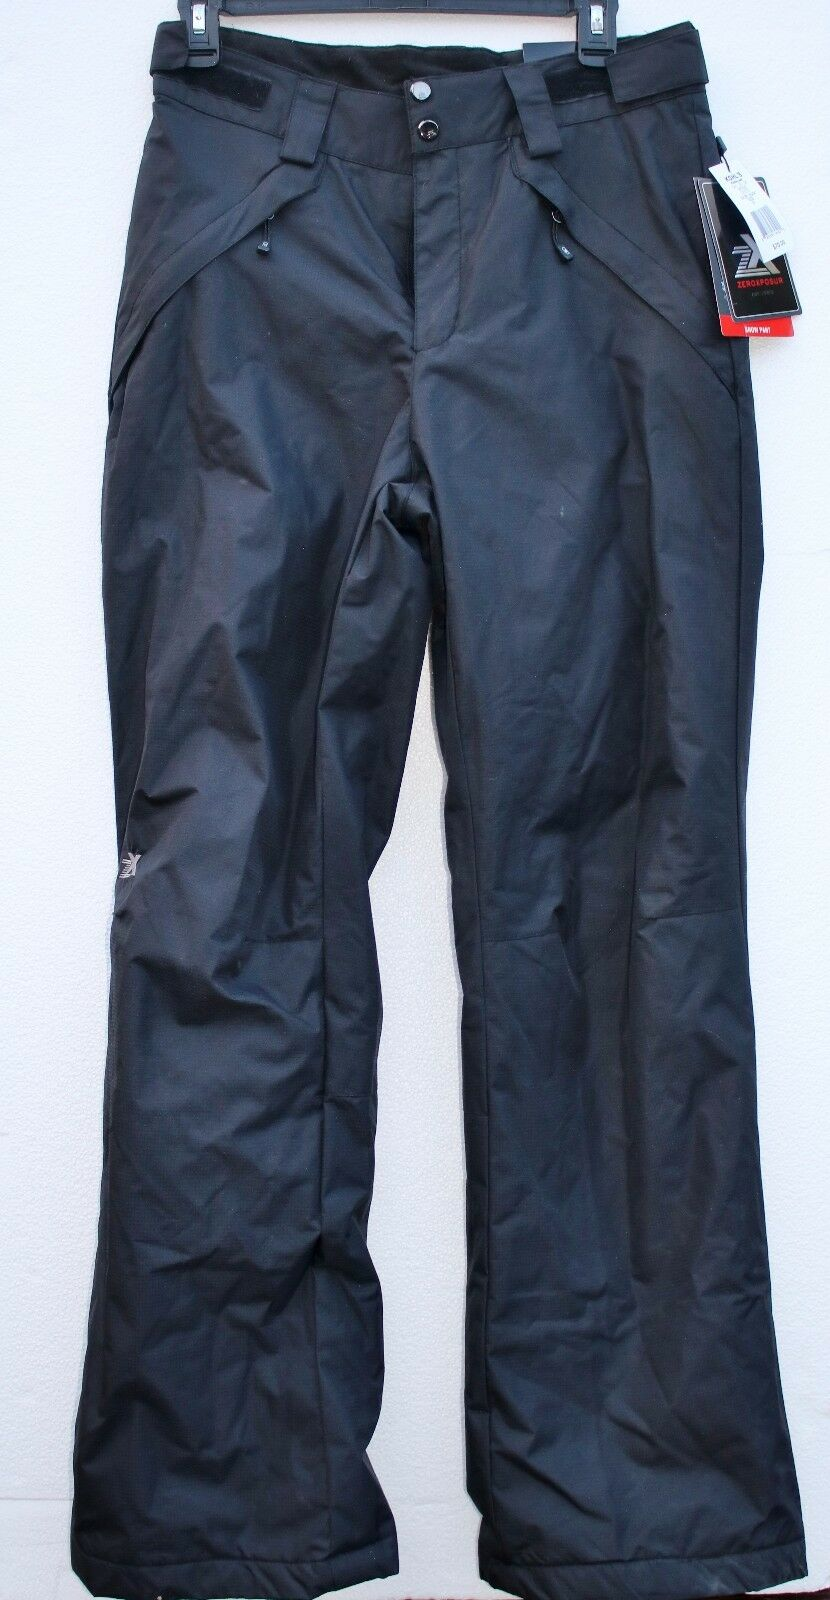 ZeroXposur Uomo Small S Small Uomo Insulated Water & Wind Resistant Snow Bibs Pant Pants 6d6452